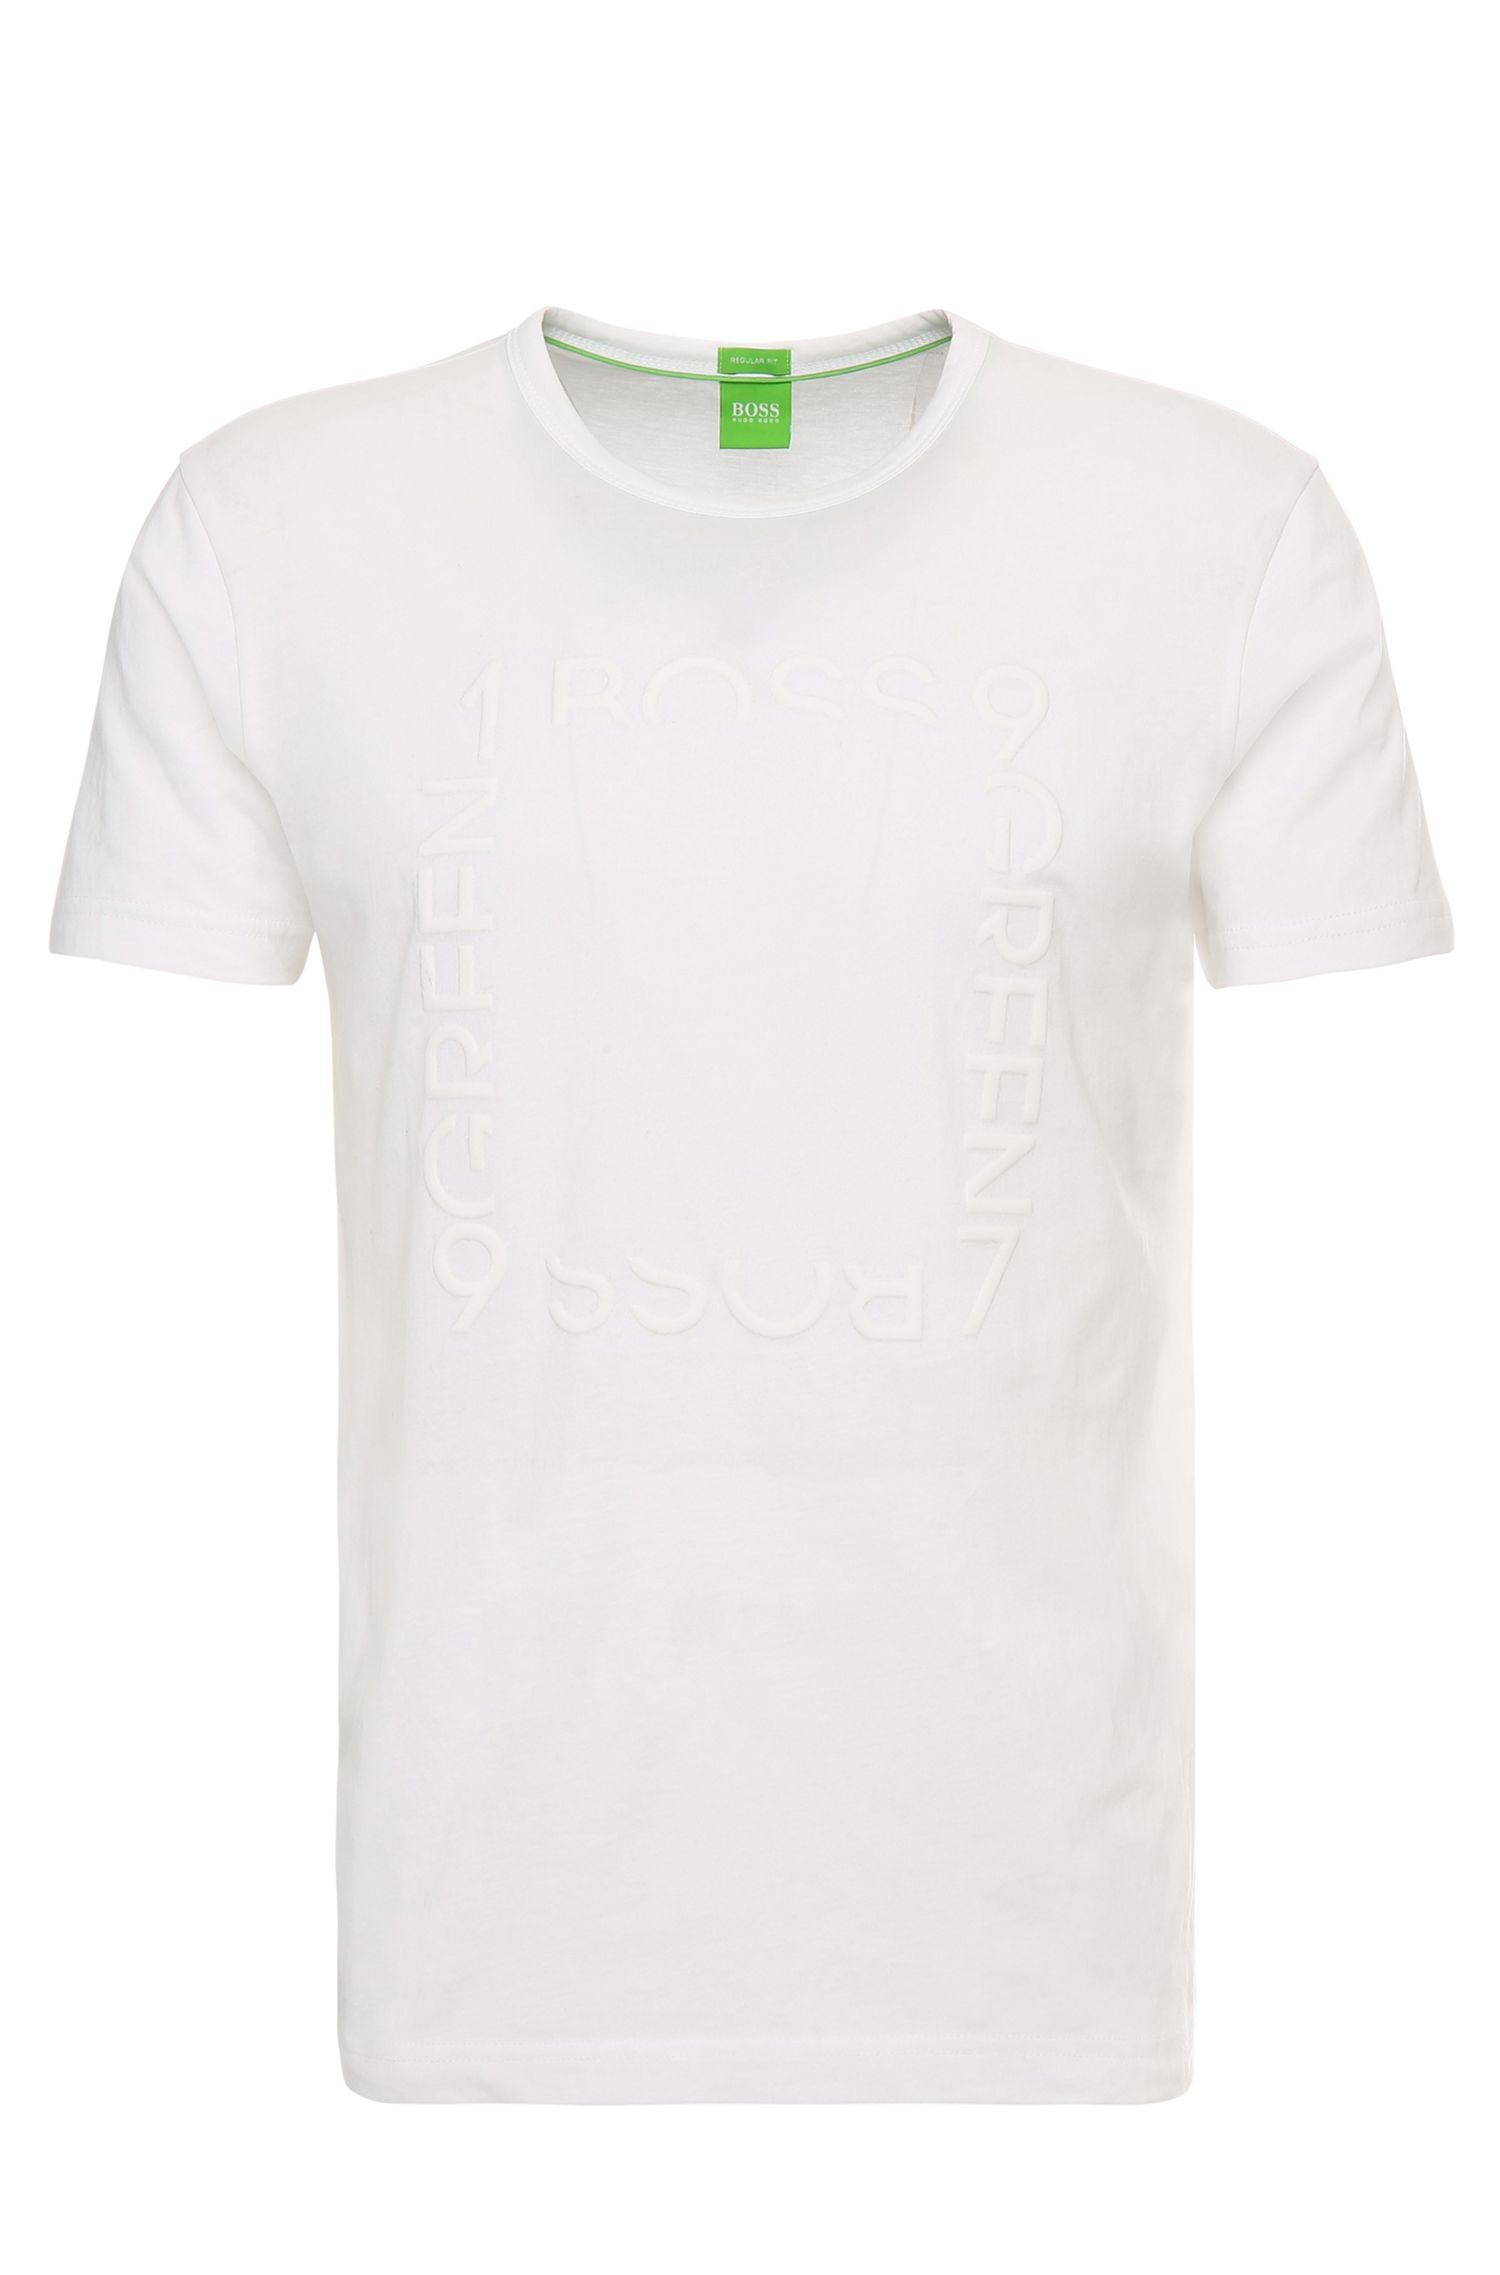 Regular-fit T-shirt in cotton with logo lettering: 'Tee 3'